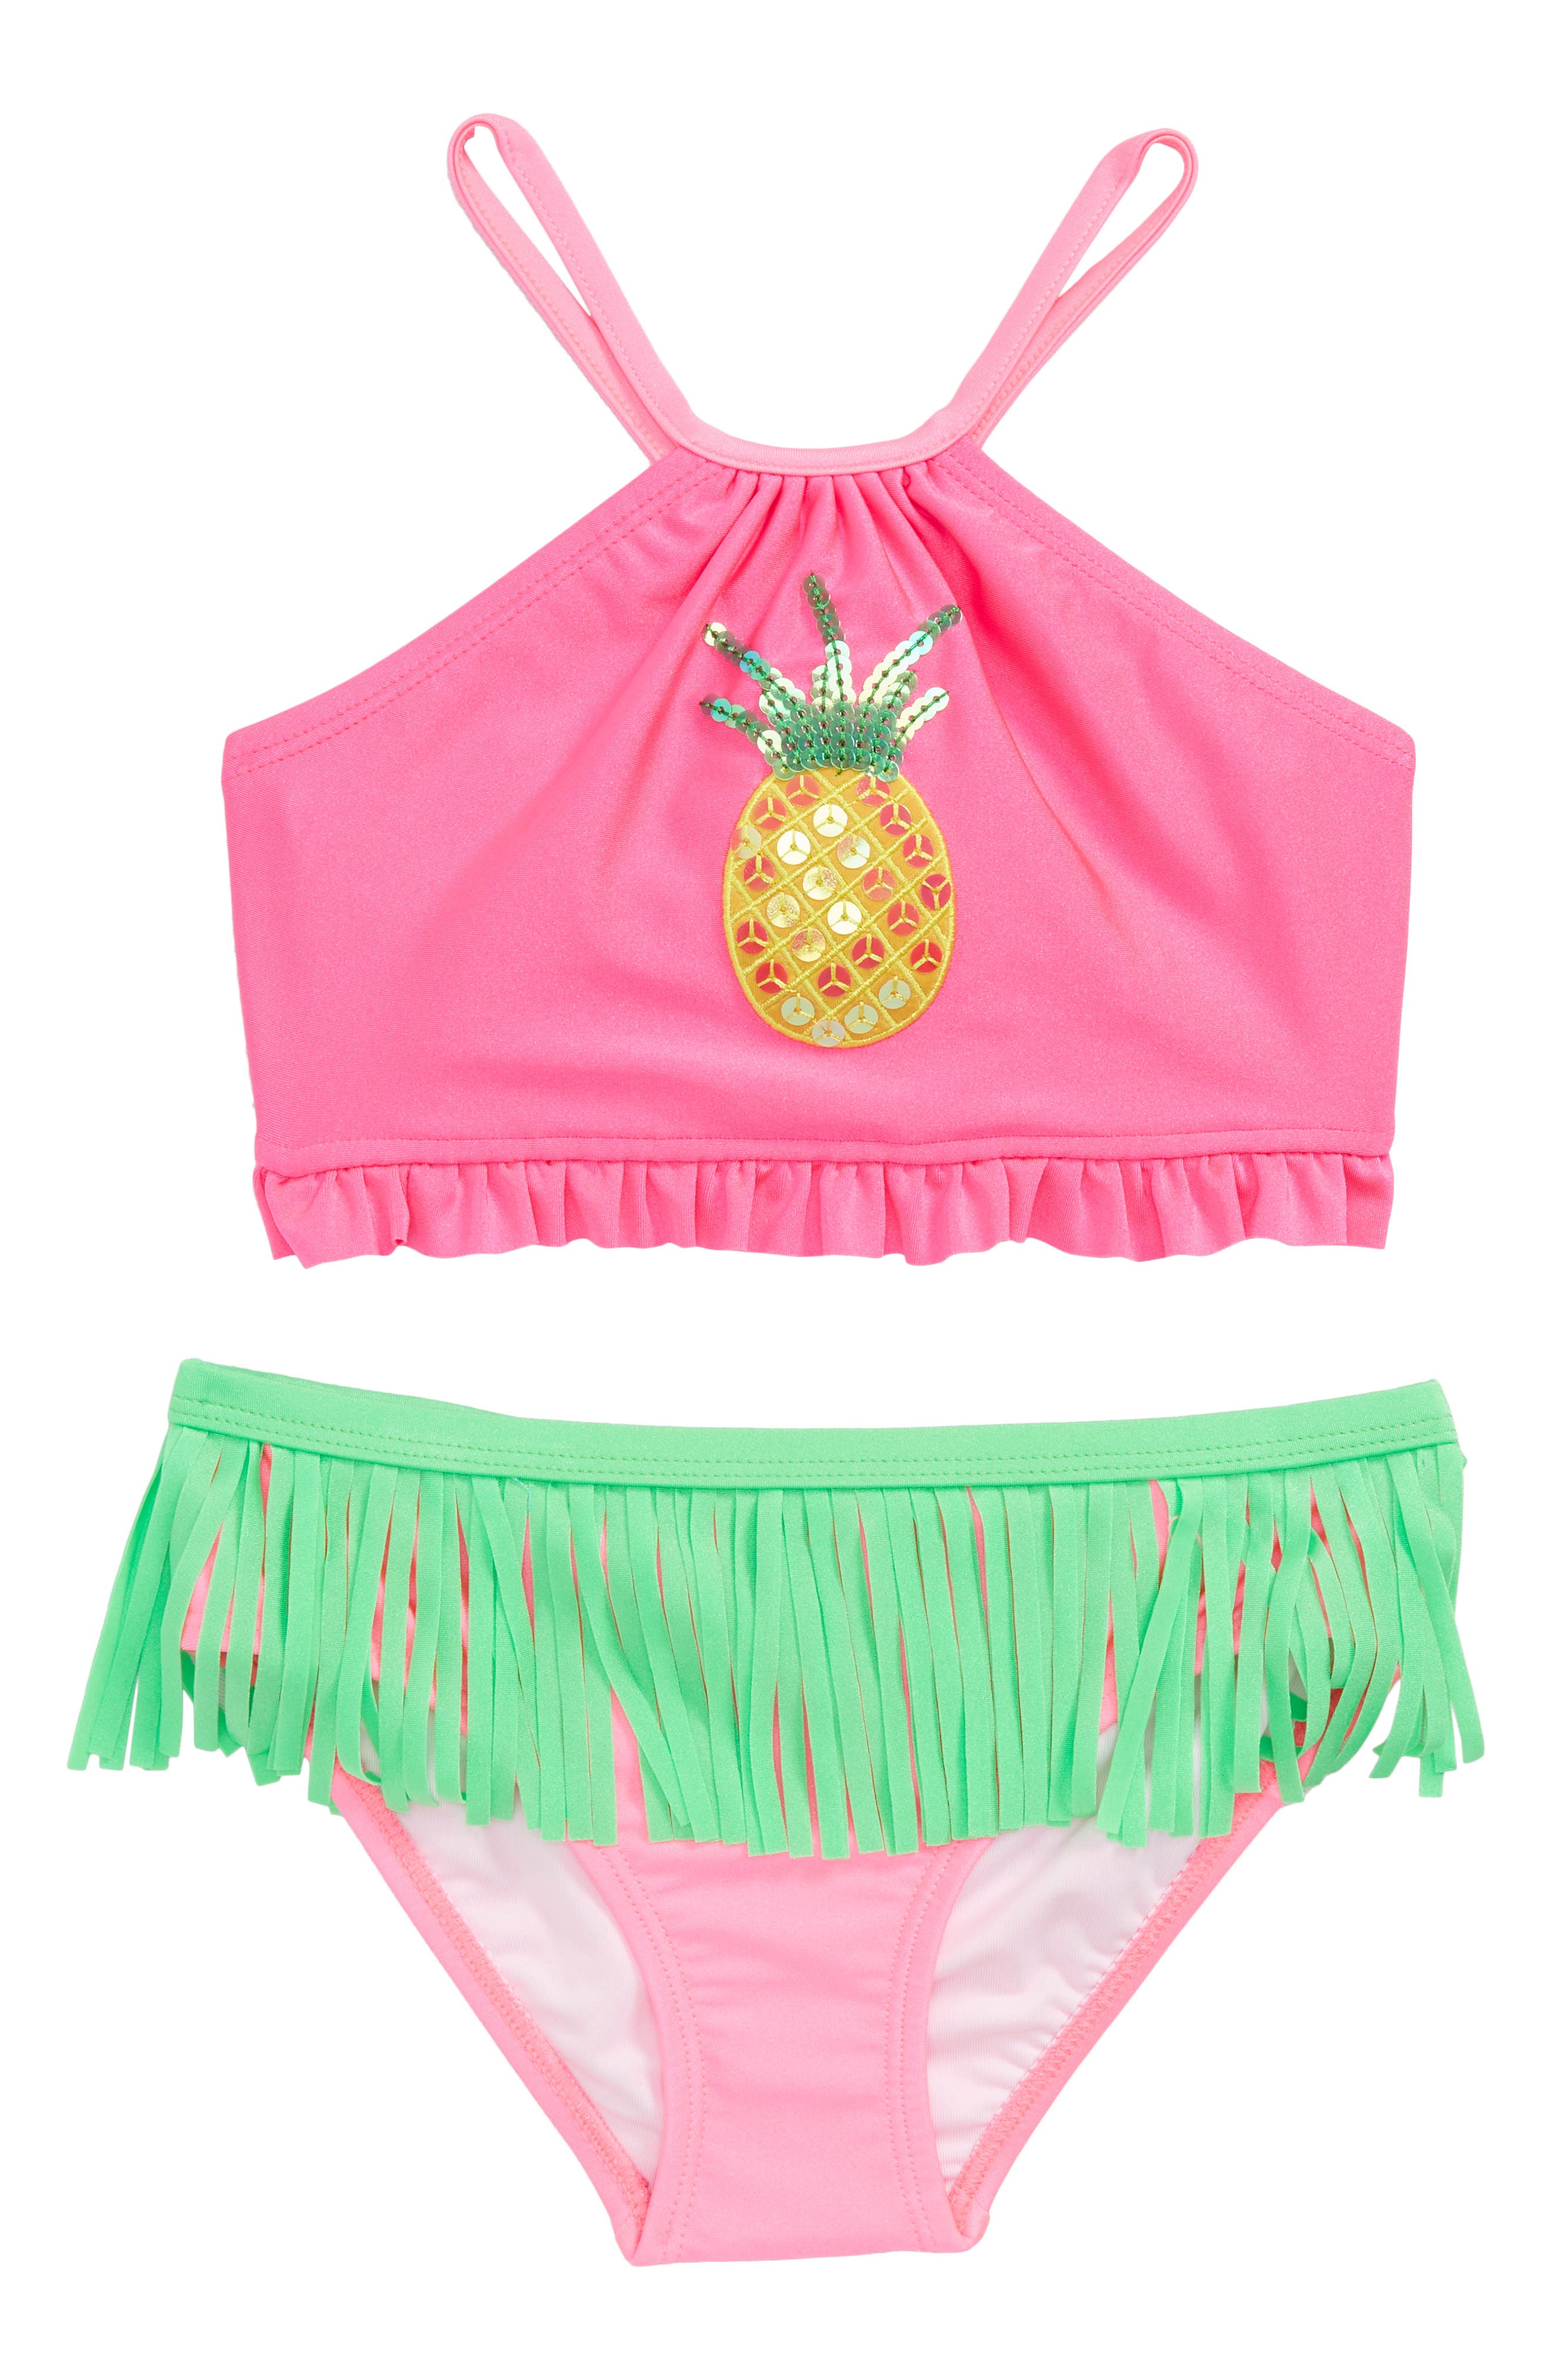 Pineapple Hula Two-Piece Bikini Swimsuit,                             Main thumbnail 1, color,                             650